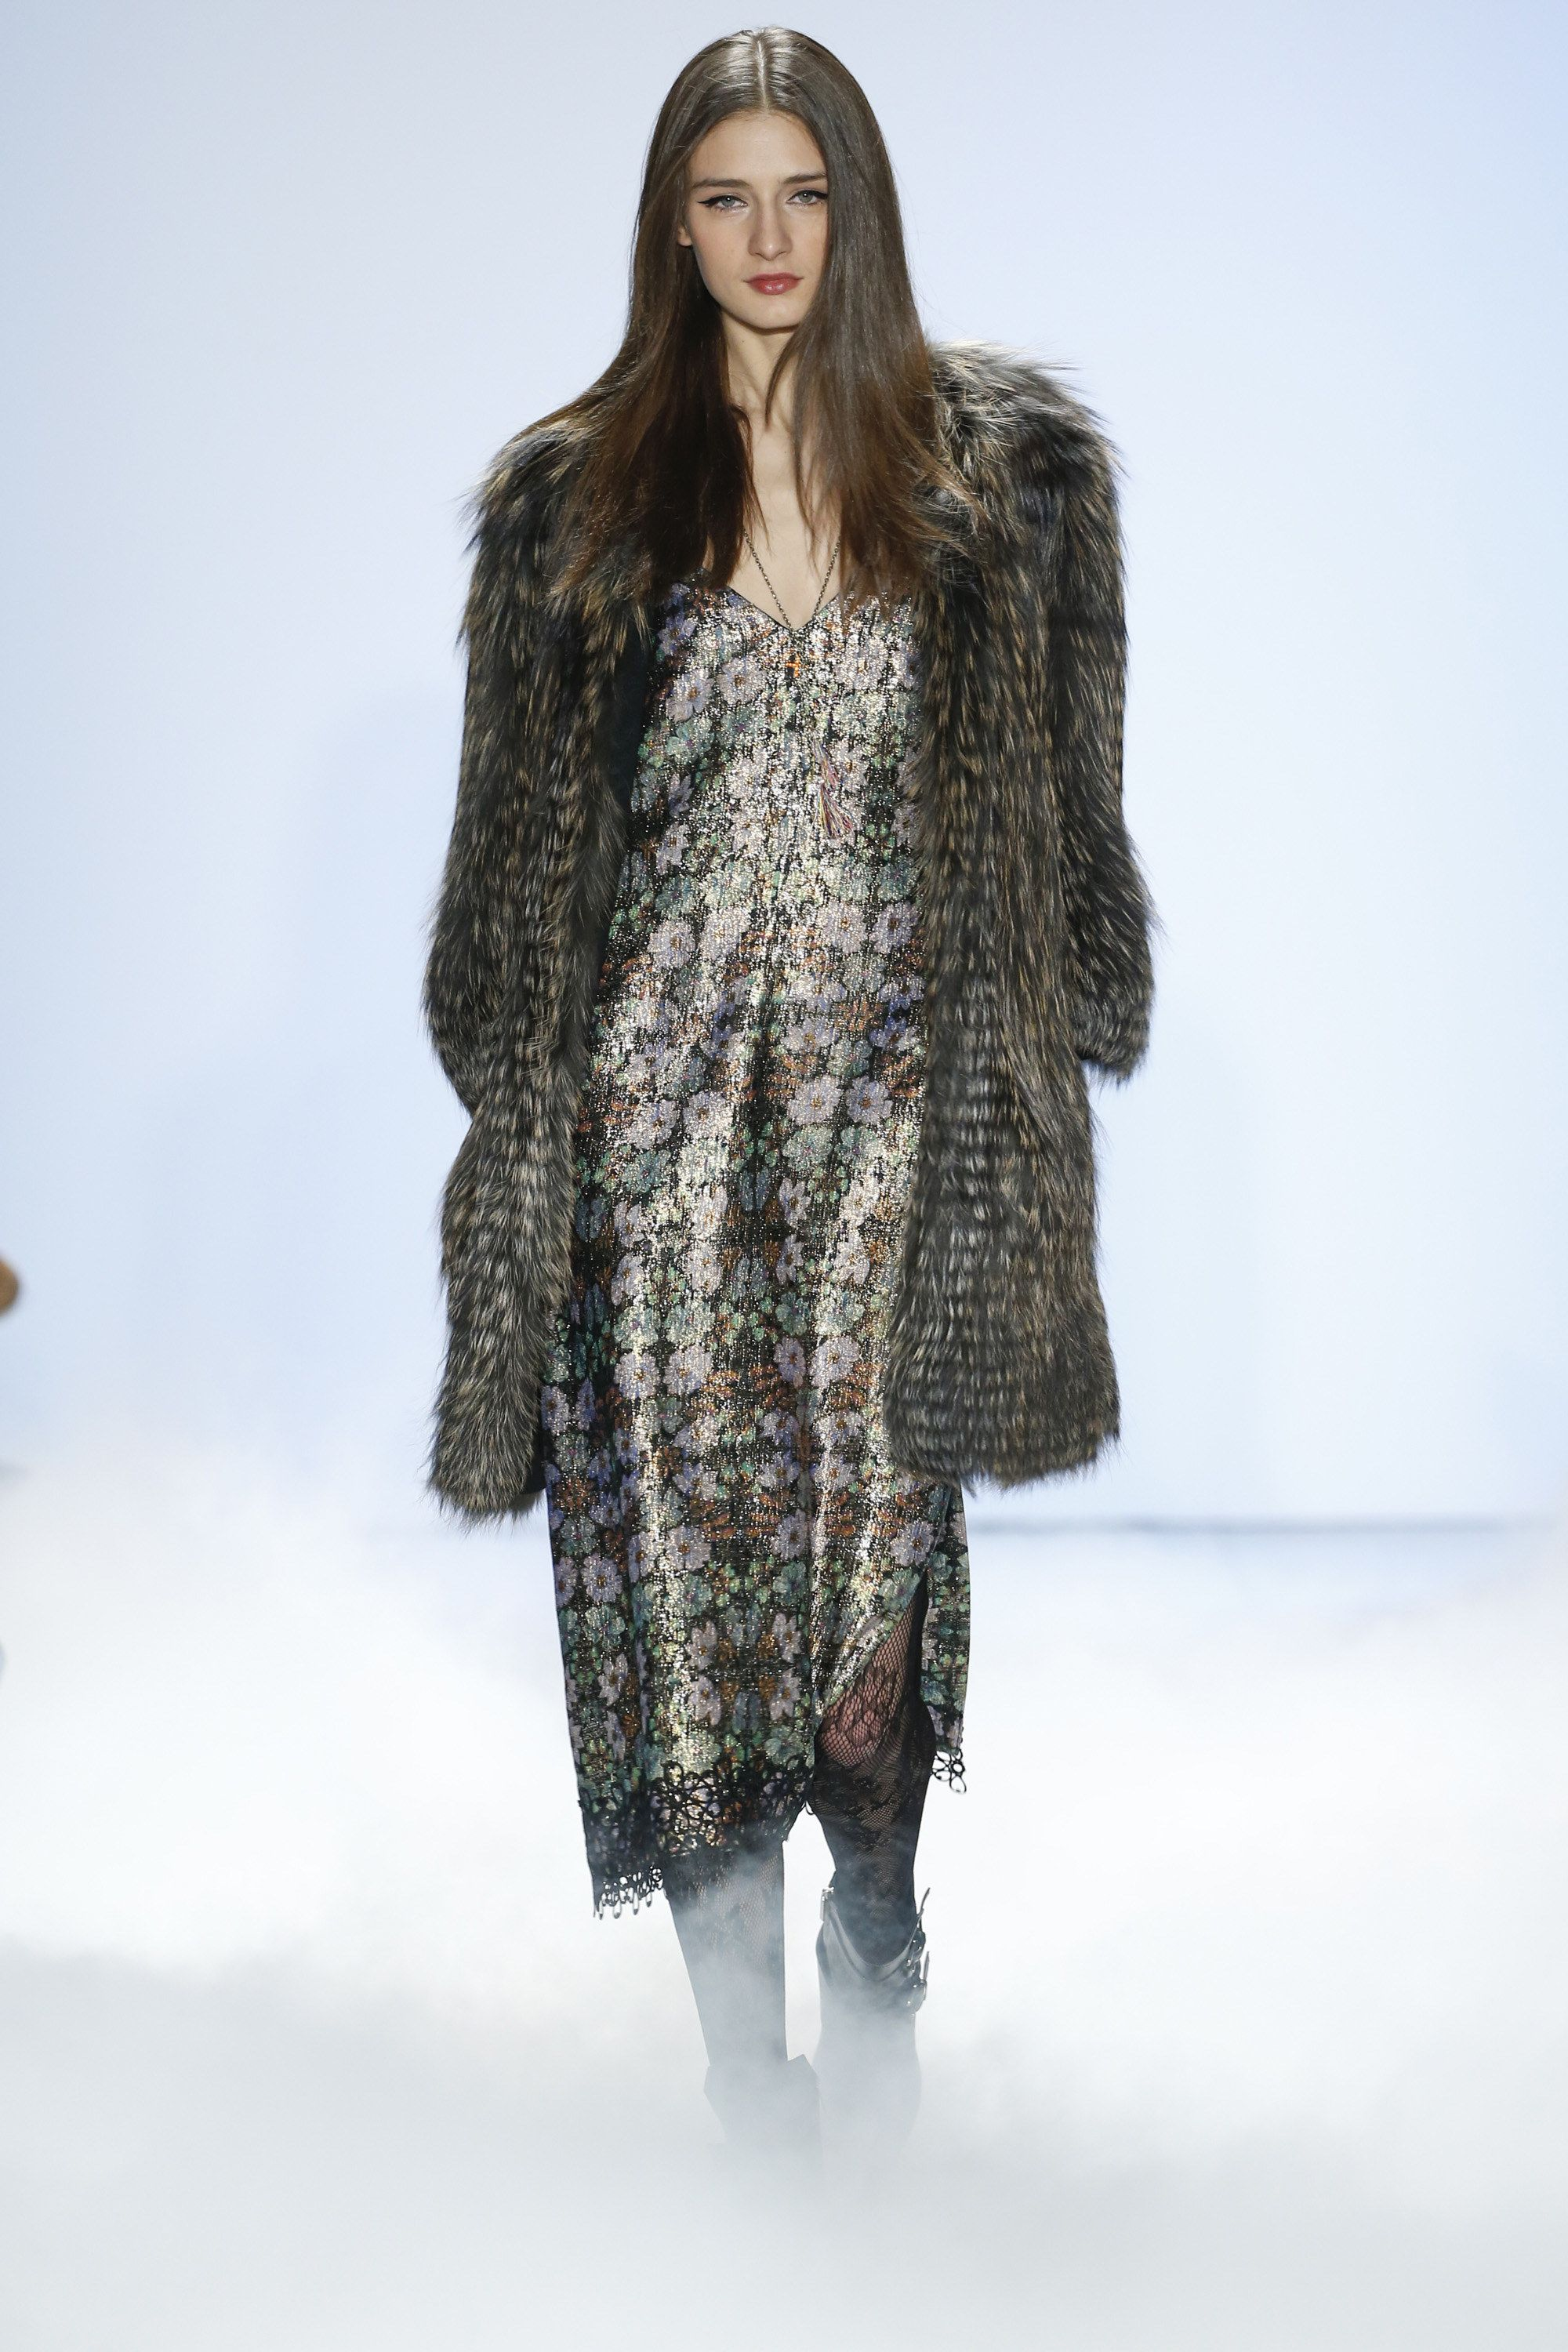 Nicole Miller Fall 2016 Ready-to-Wear Fashion Show